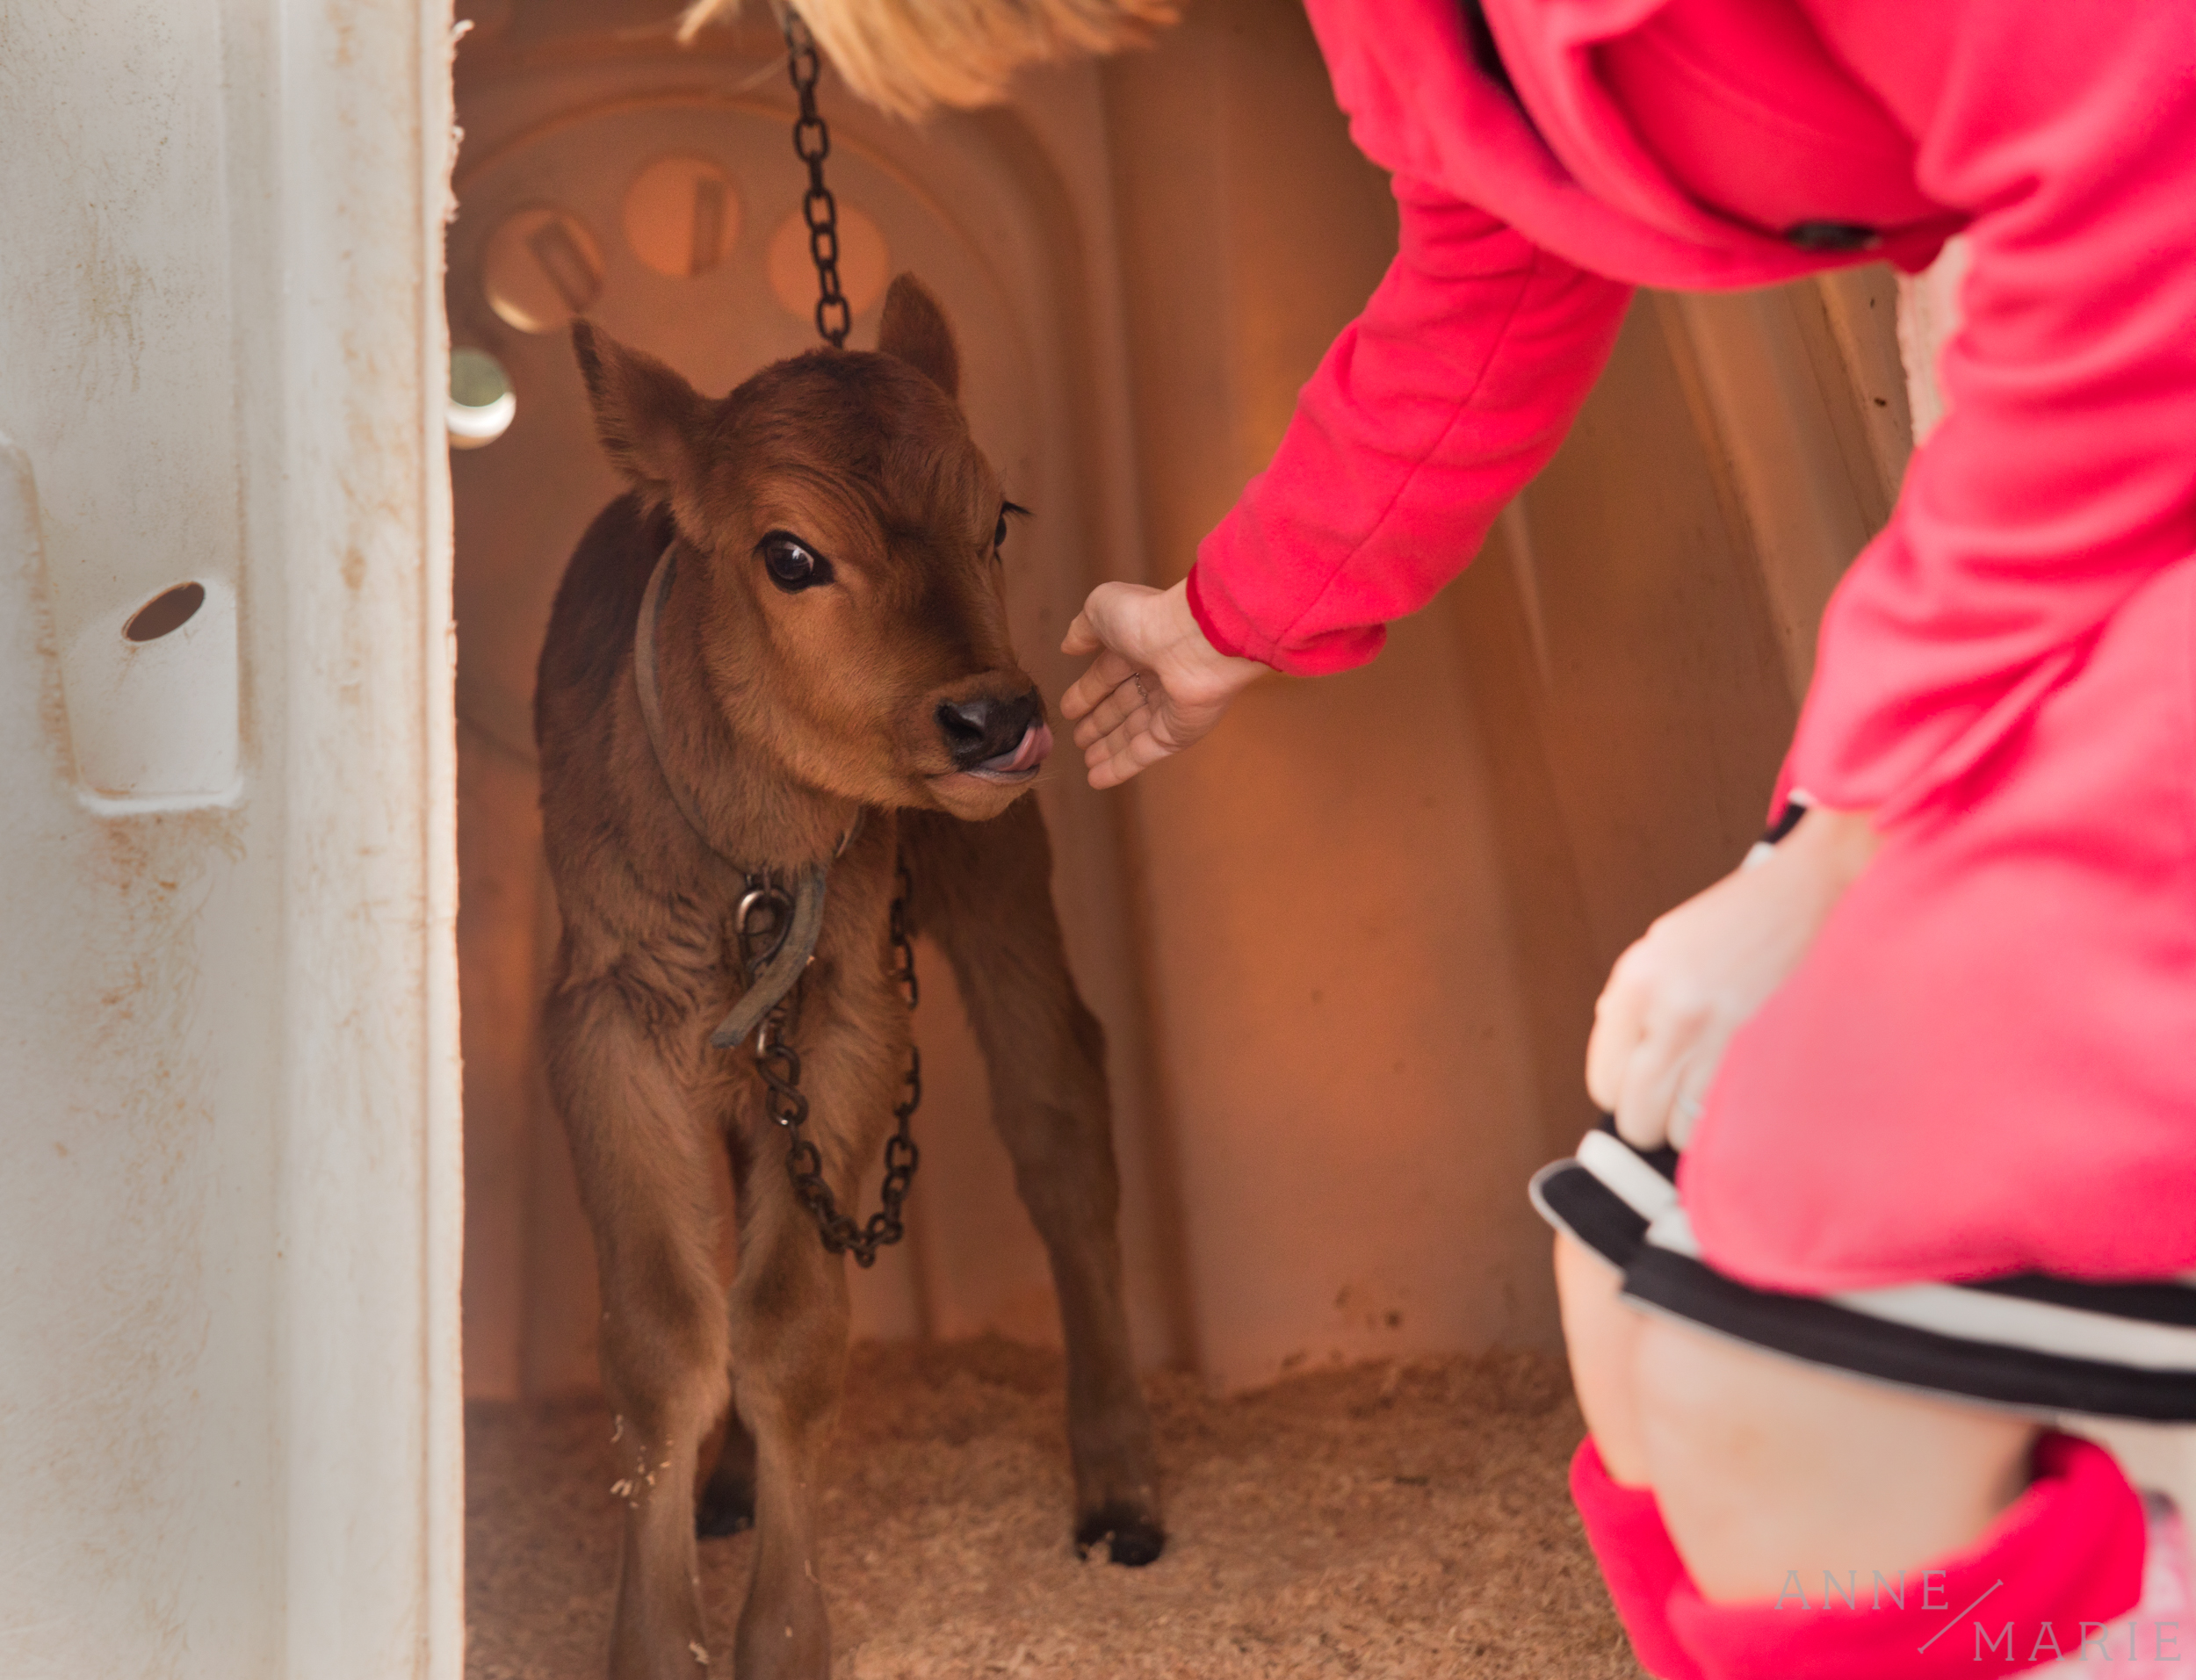 Anne-Marie pets a baby cow. This cow was about two weeks old. The baby cows live in little igloos until they are old enough to join the herd.